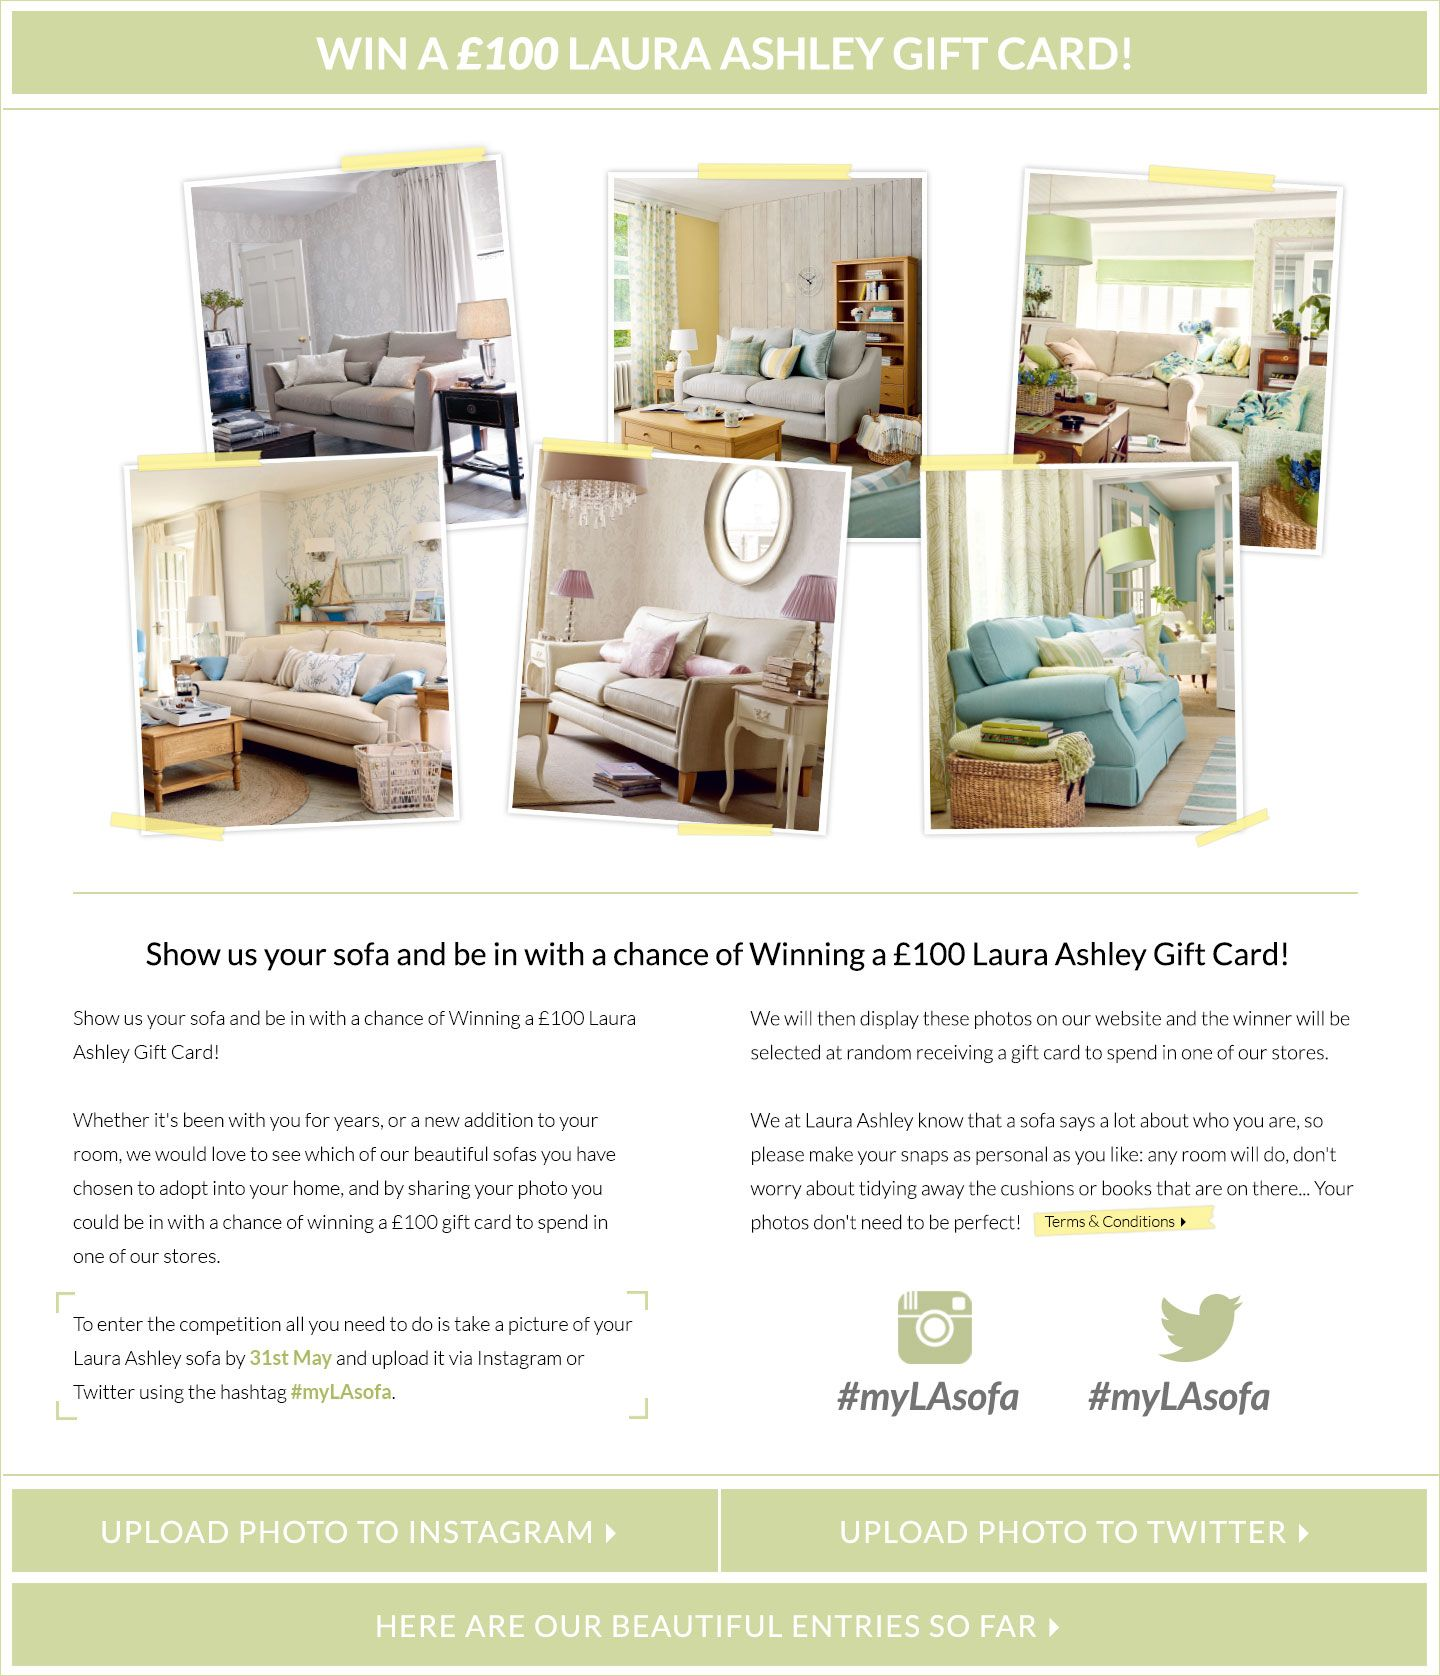 Sofa Compeion At Laura Ashley Imply Upload A Photo Of Your Using The